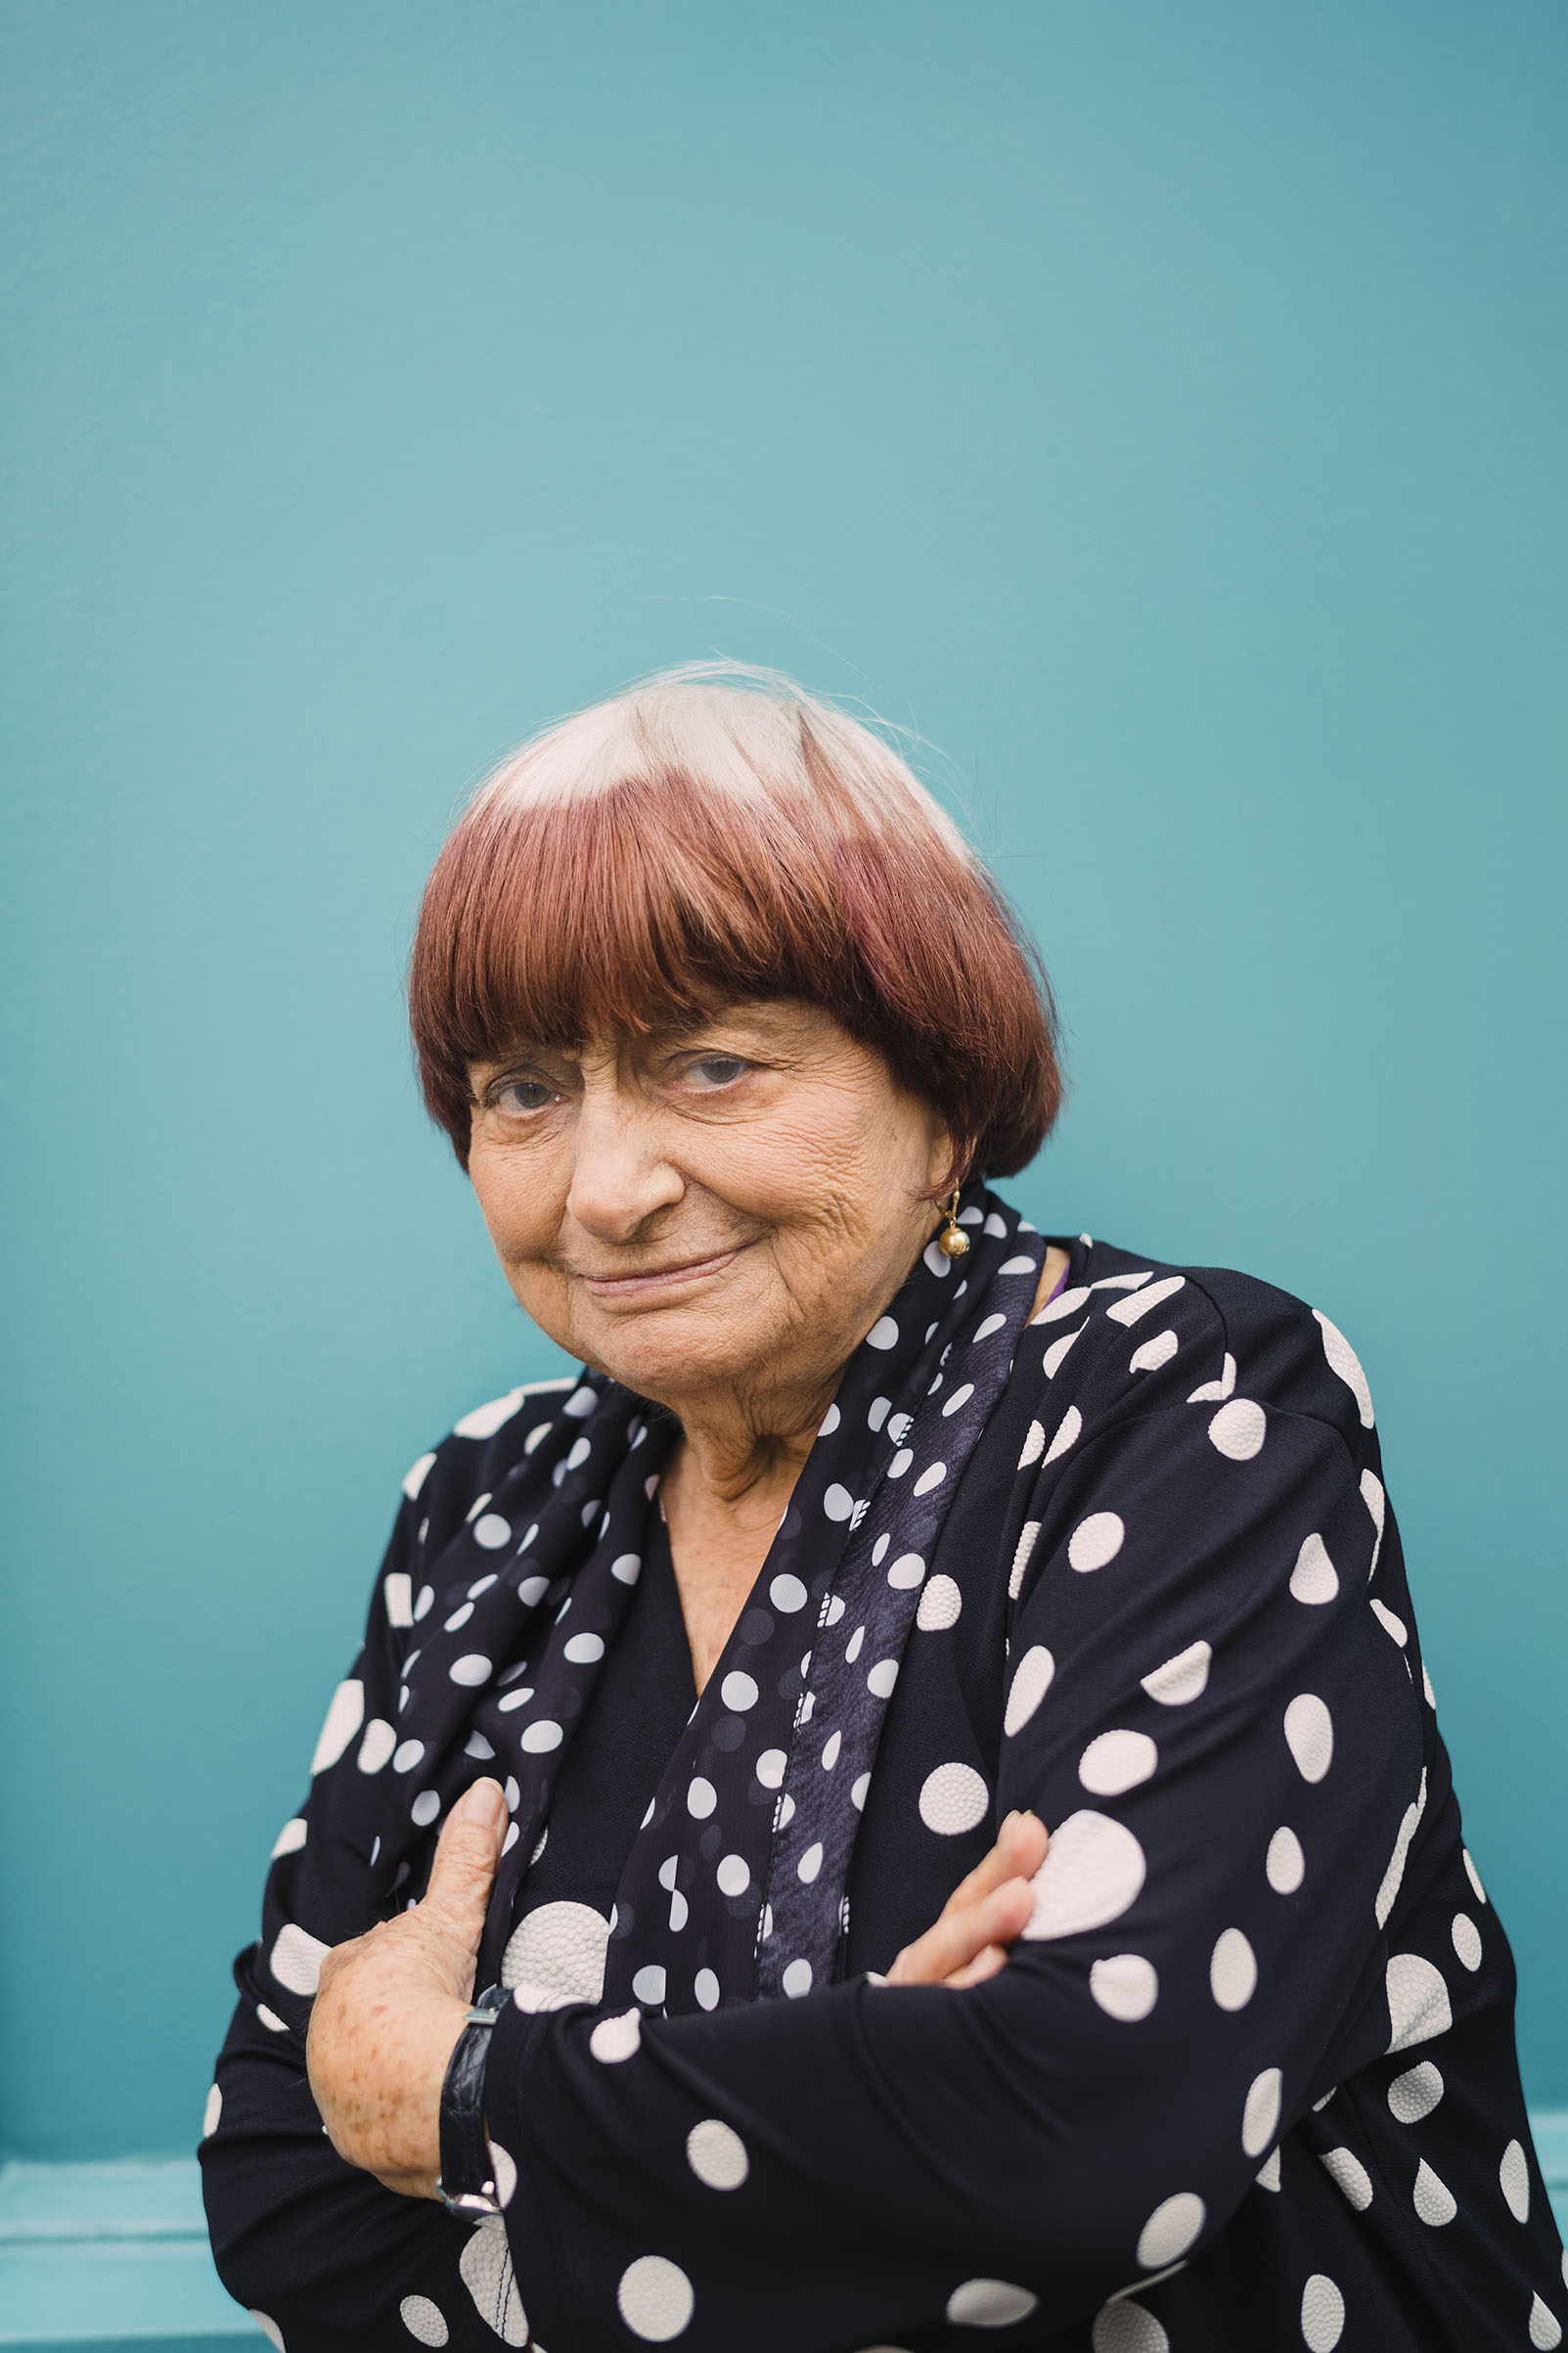 Varda's career ran from New Wave narrative to modern documentary